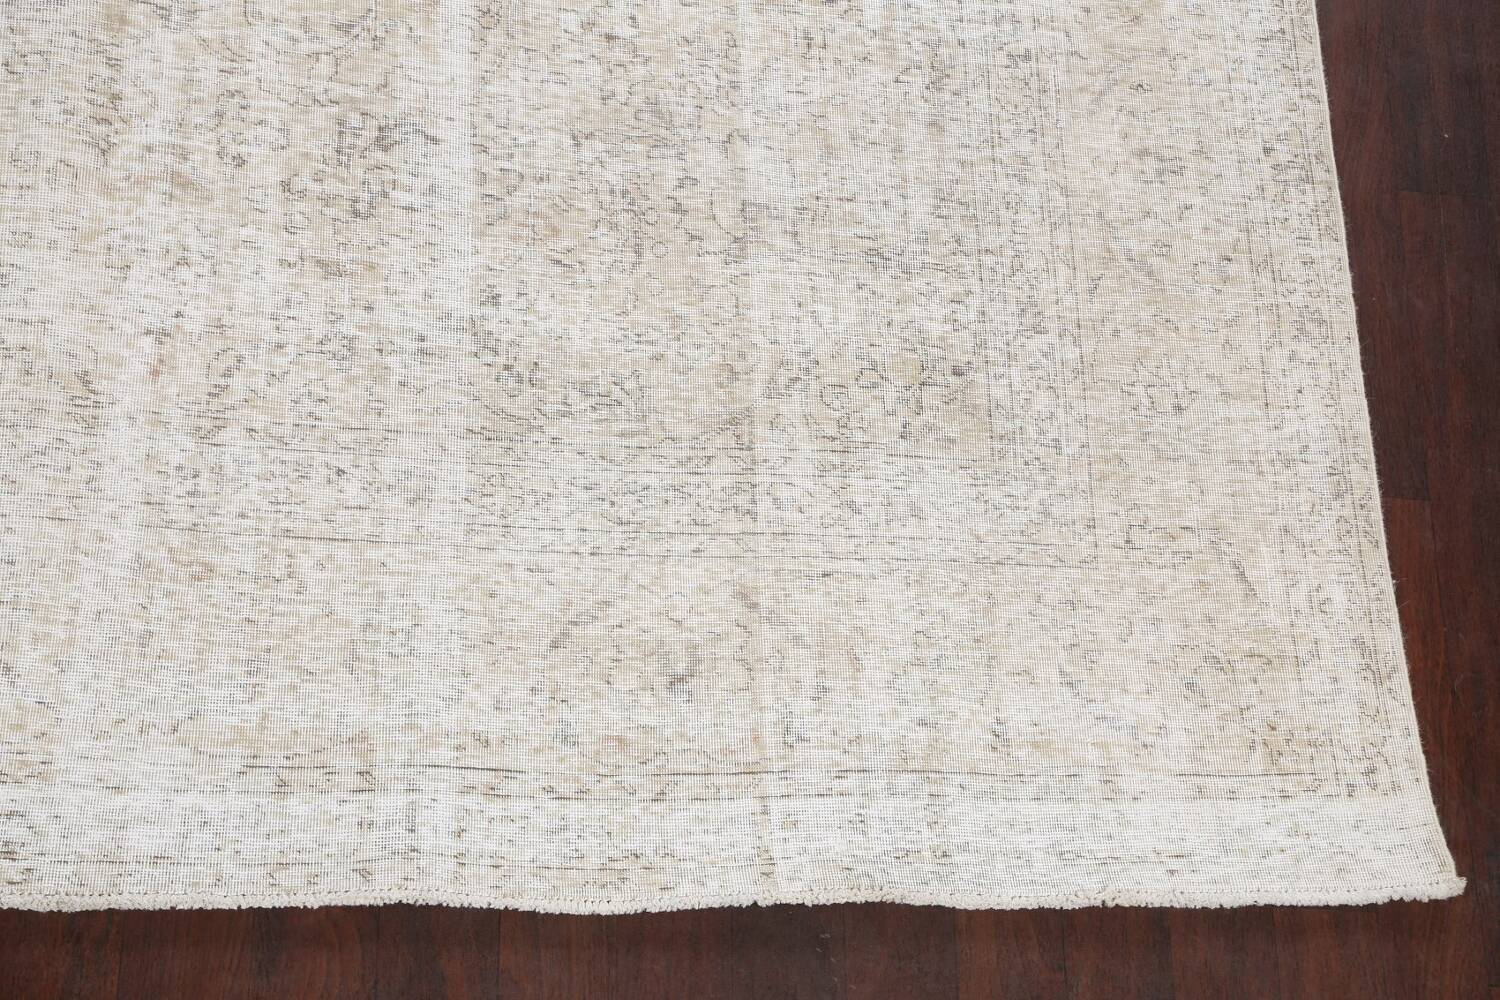 Antique Muted Vintage Distressed Oriental Area Rug 10x11 image 5